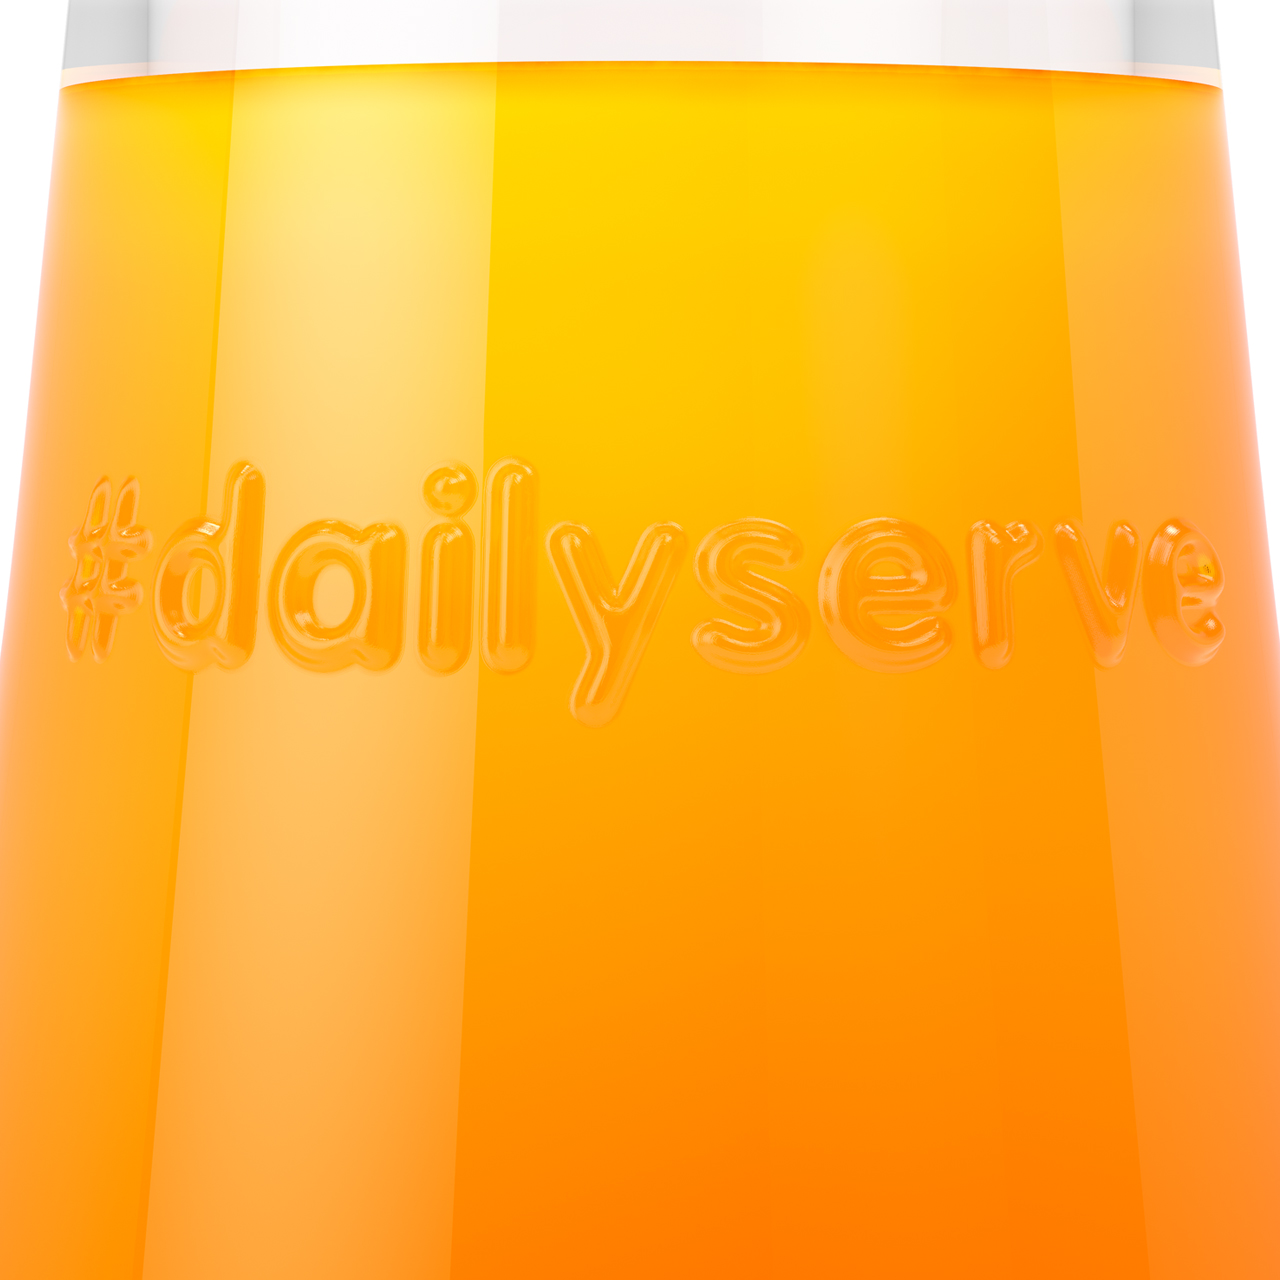 Close up 3D render of a Millie 250mL two servings glass bottle manufactured by i-o Glass